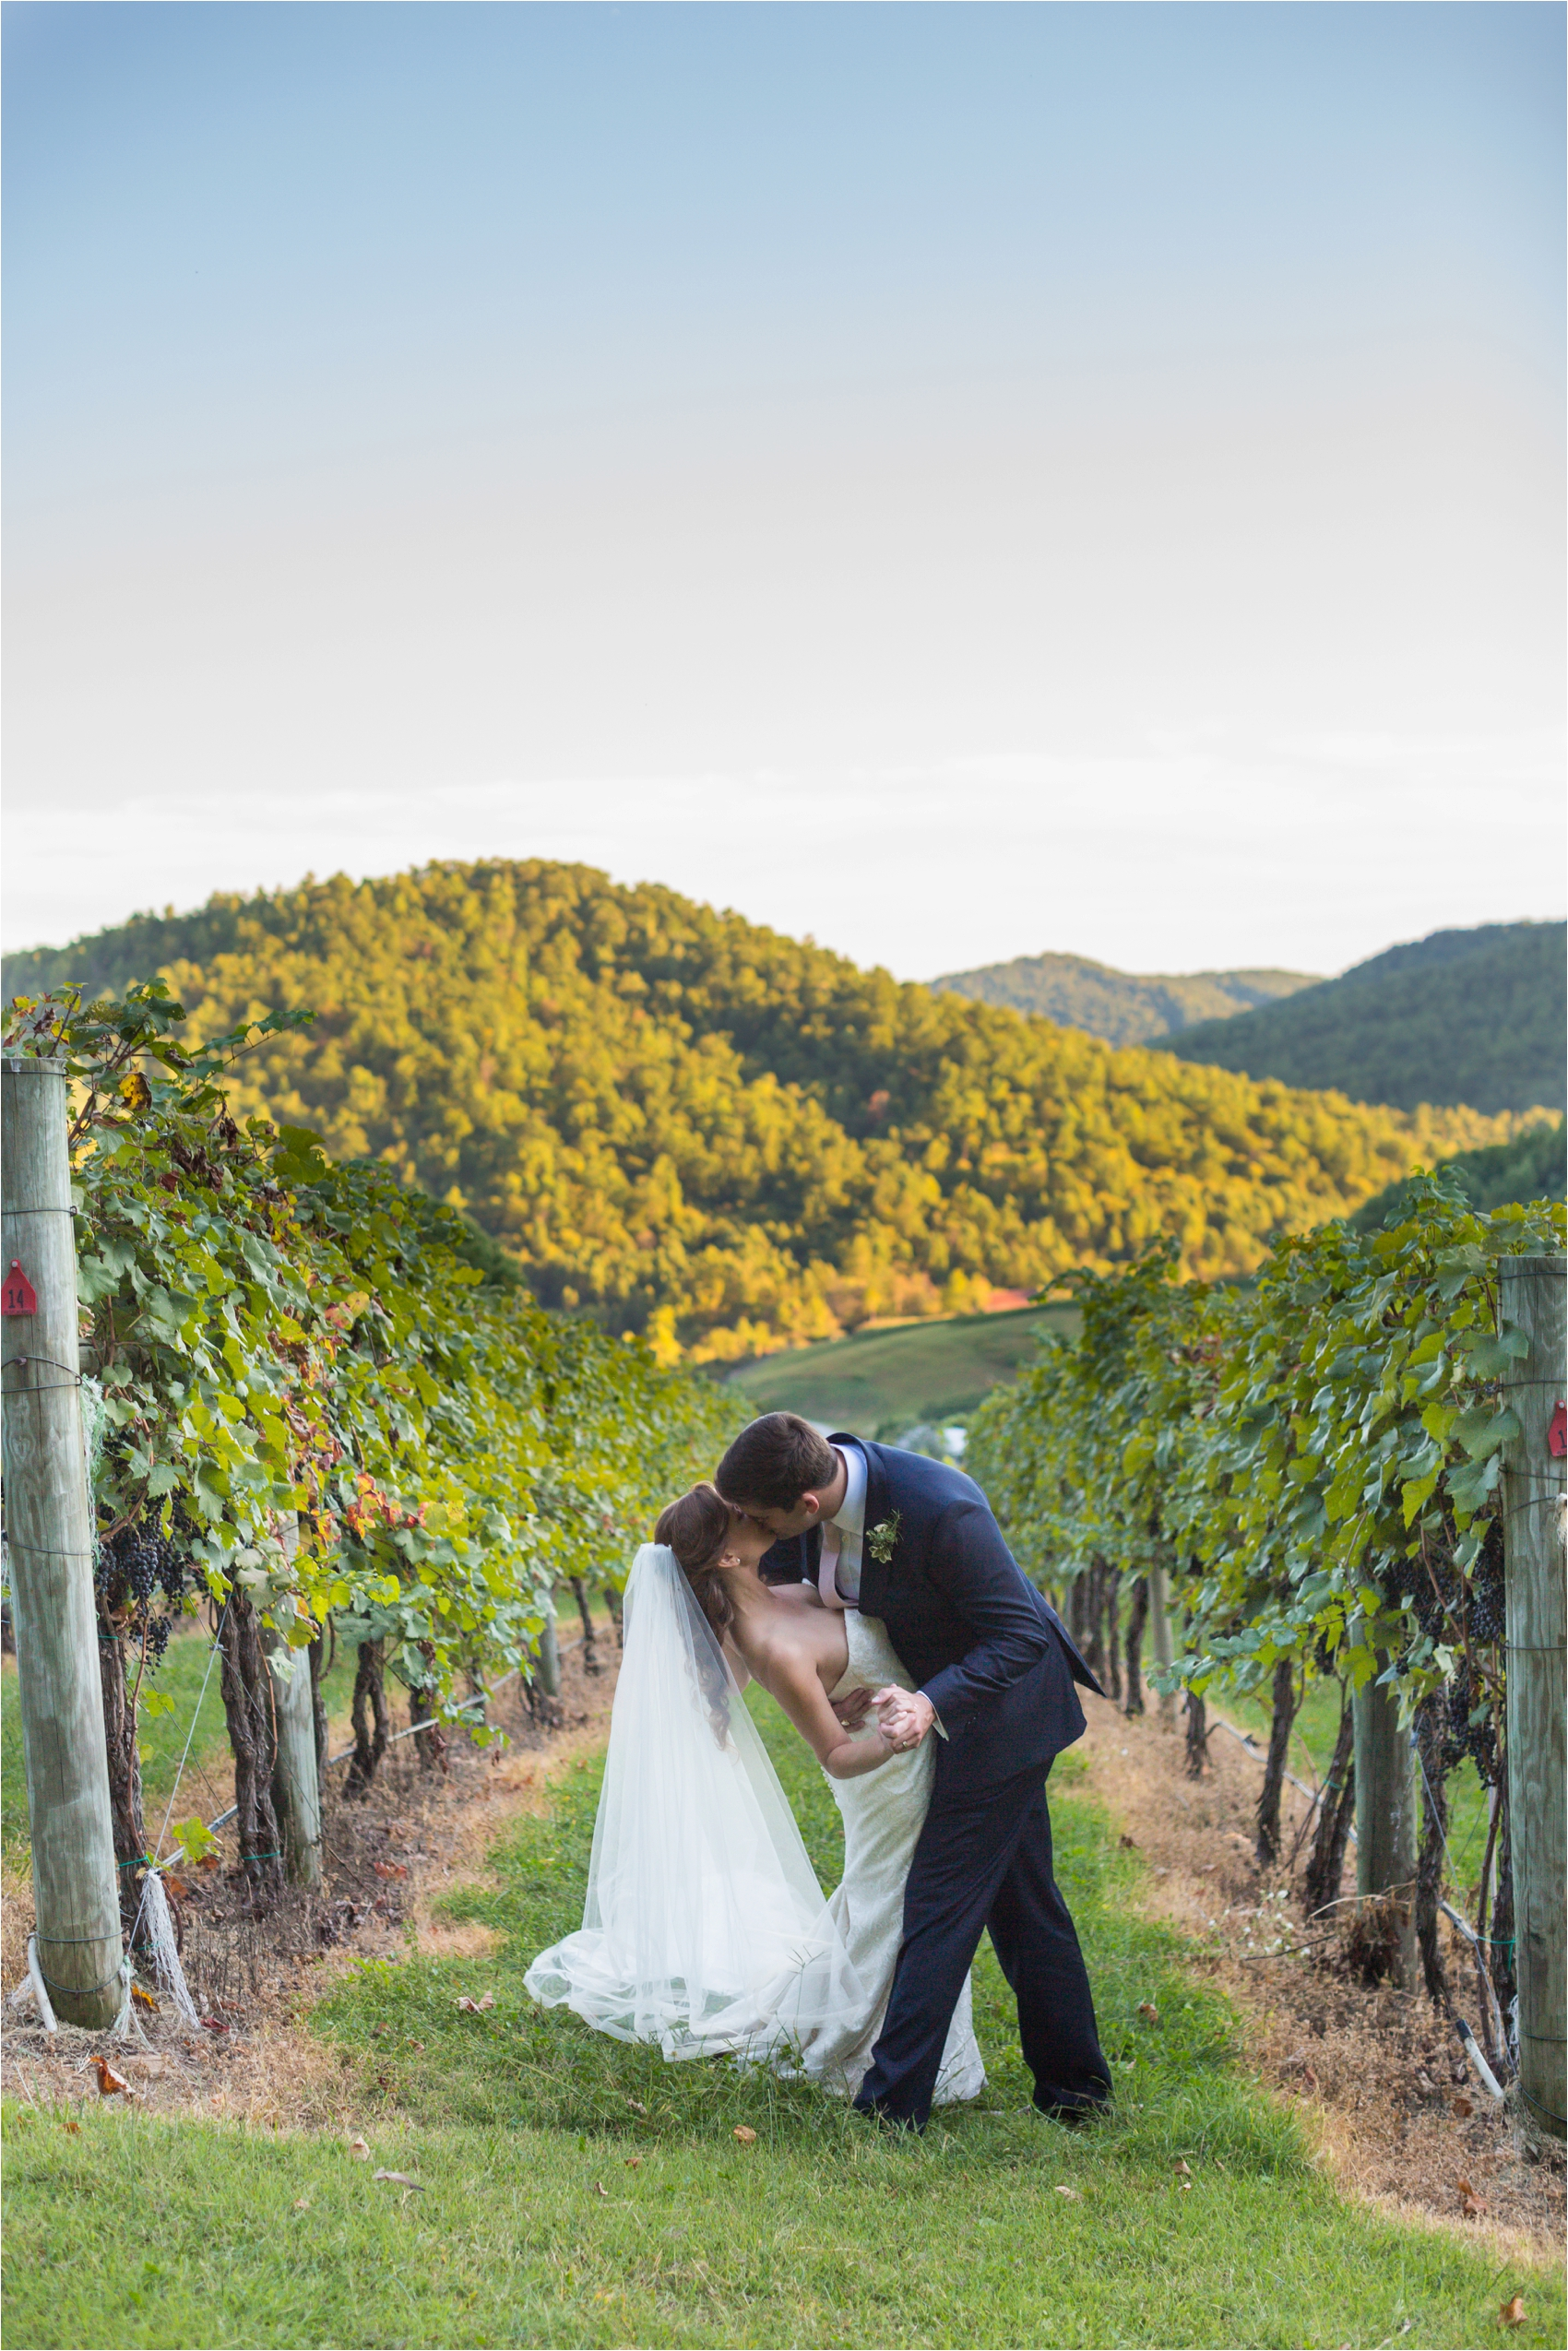 Delfosse-Vineyard-Wedding-Feather-and-Oak-Photography-0915.jpg